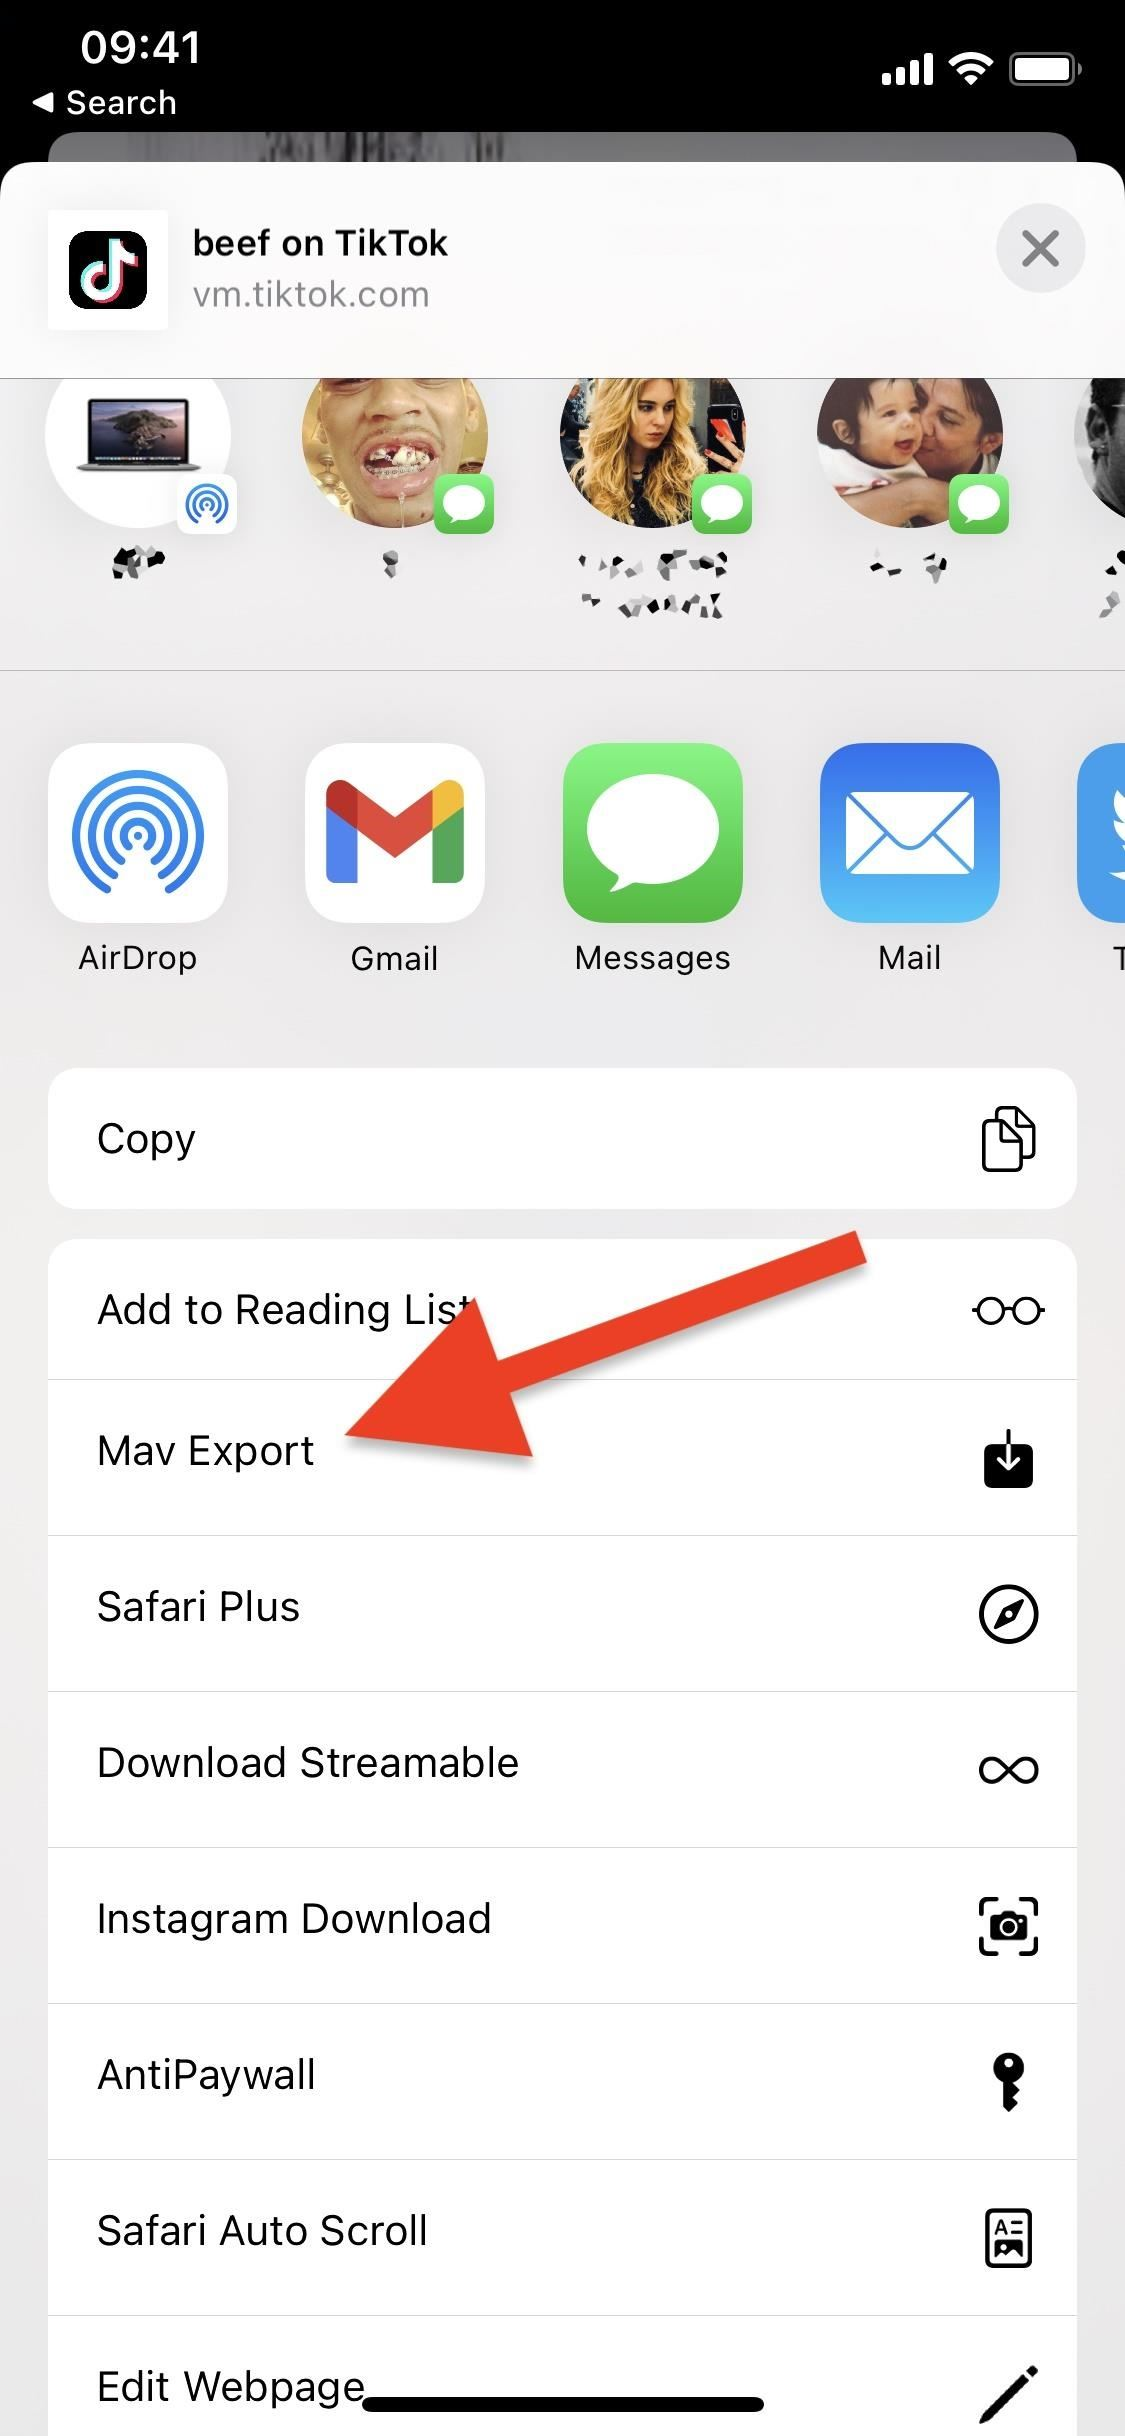 How to Download TikTok Videos on Your iPhone without Watermarks